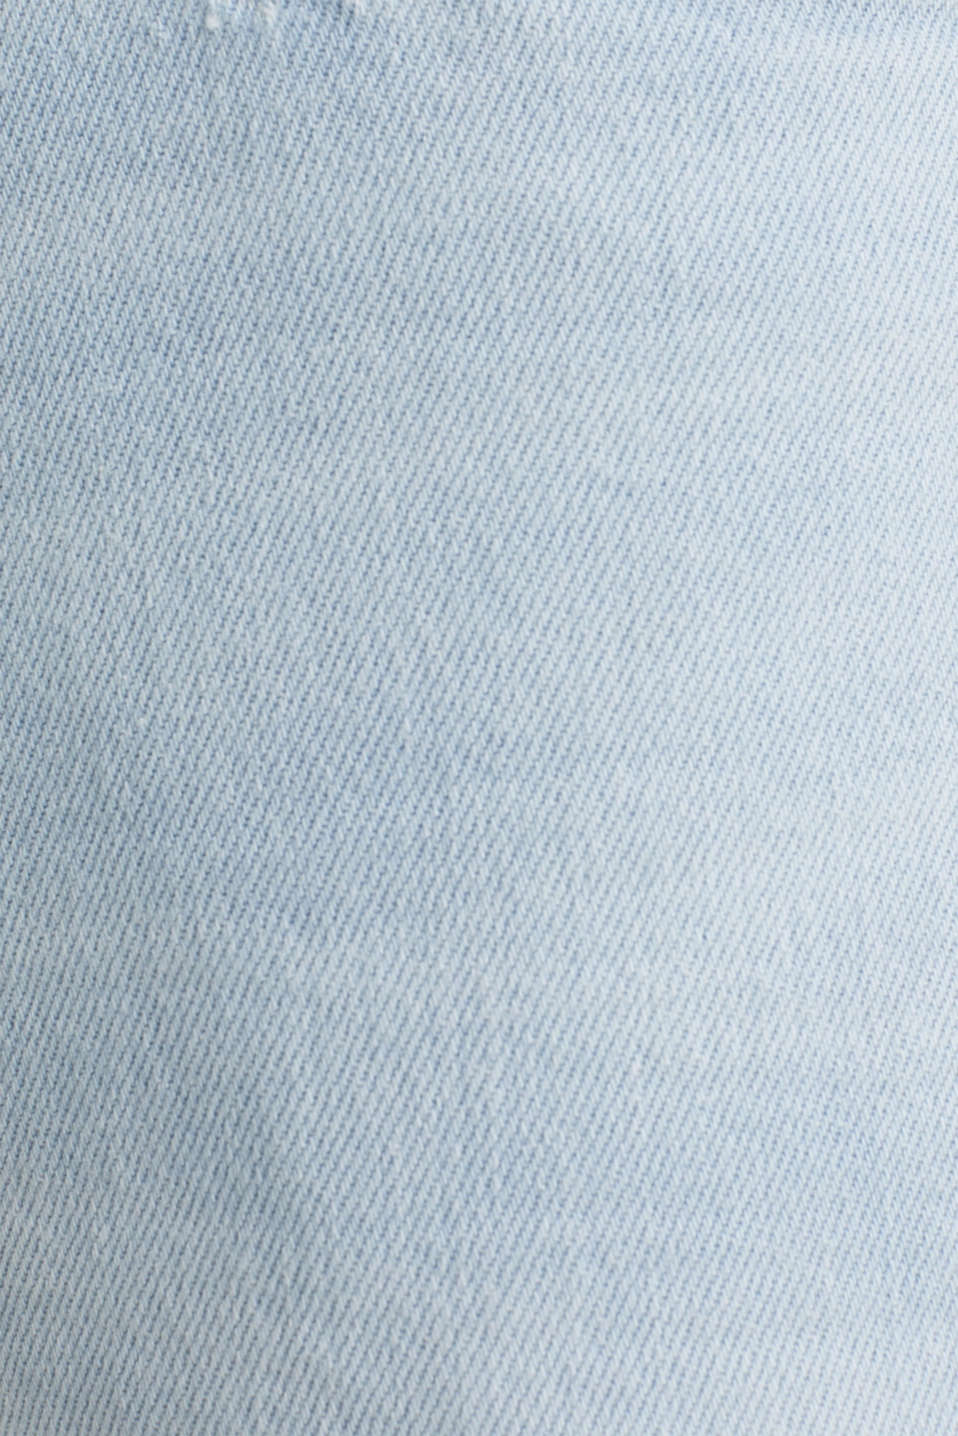 Ankle-length jeans containing organic cotton, BLUE BLEACHED, detail image number 4